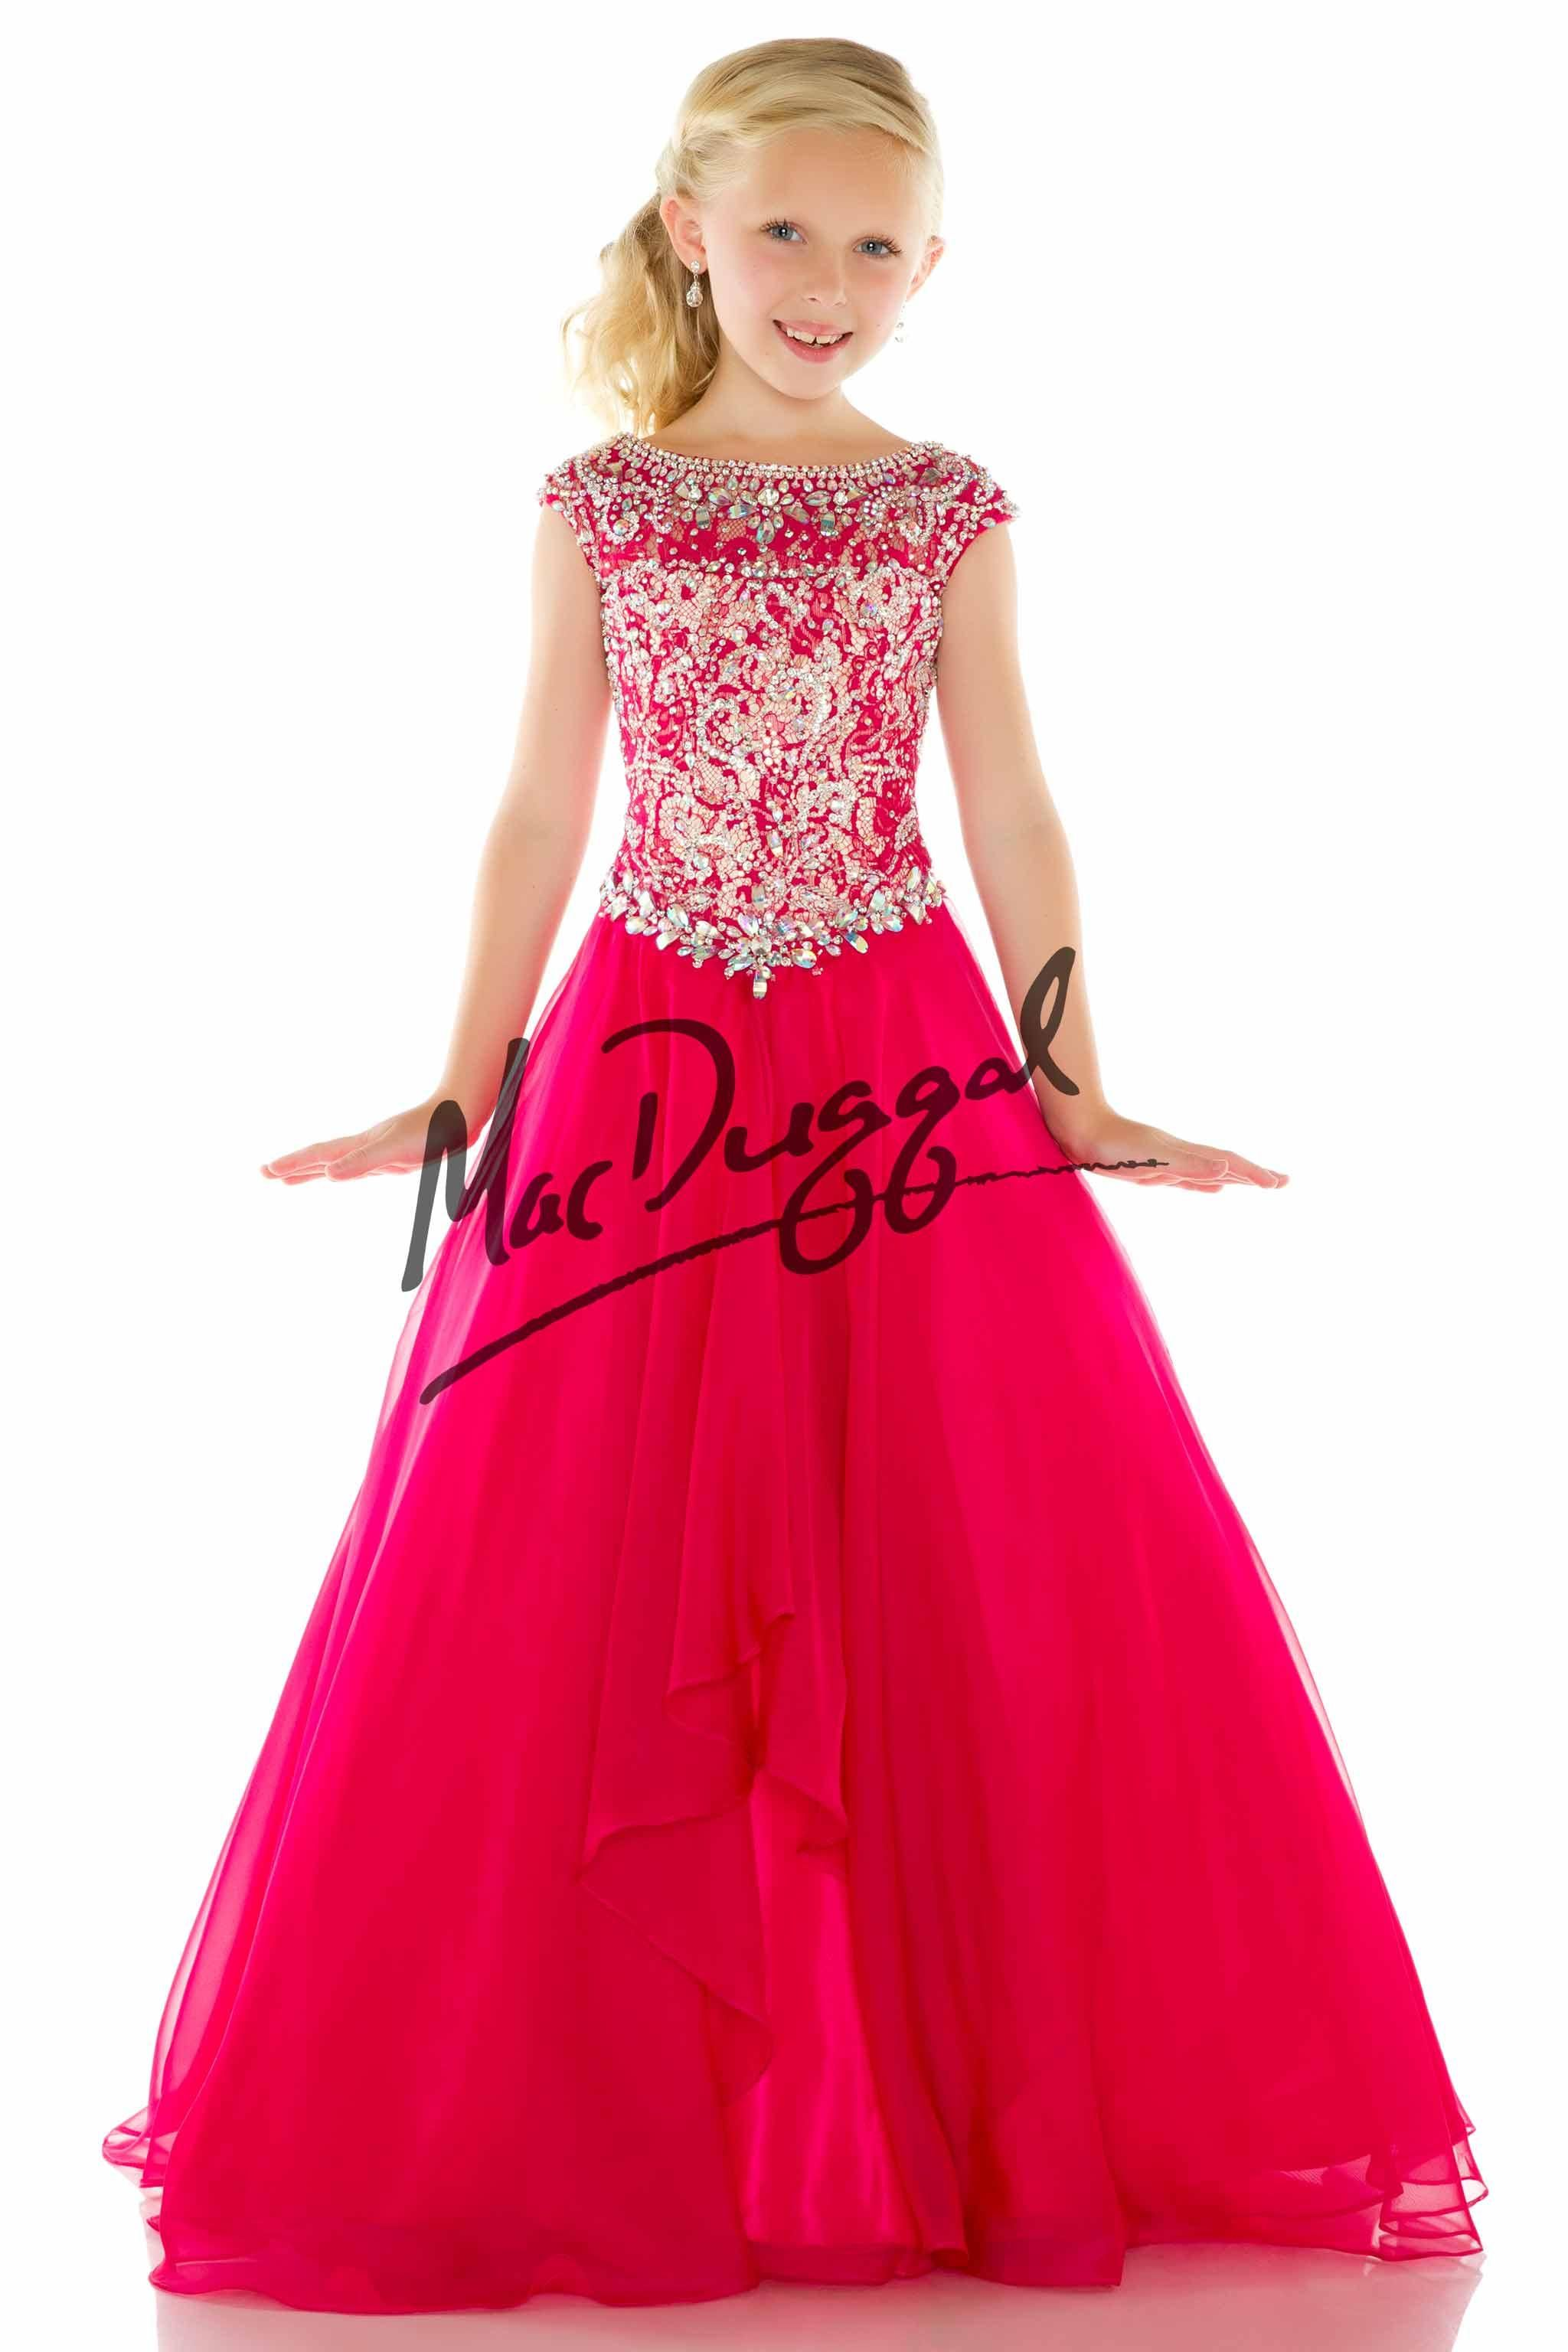 Image result for western dresses for small girls by mac duggal ...